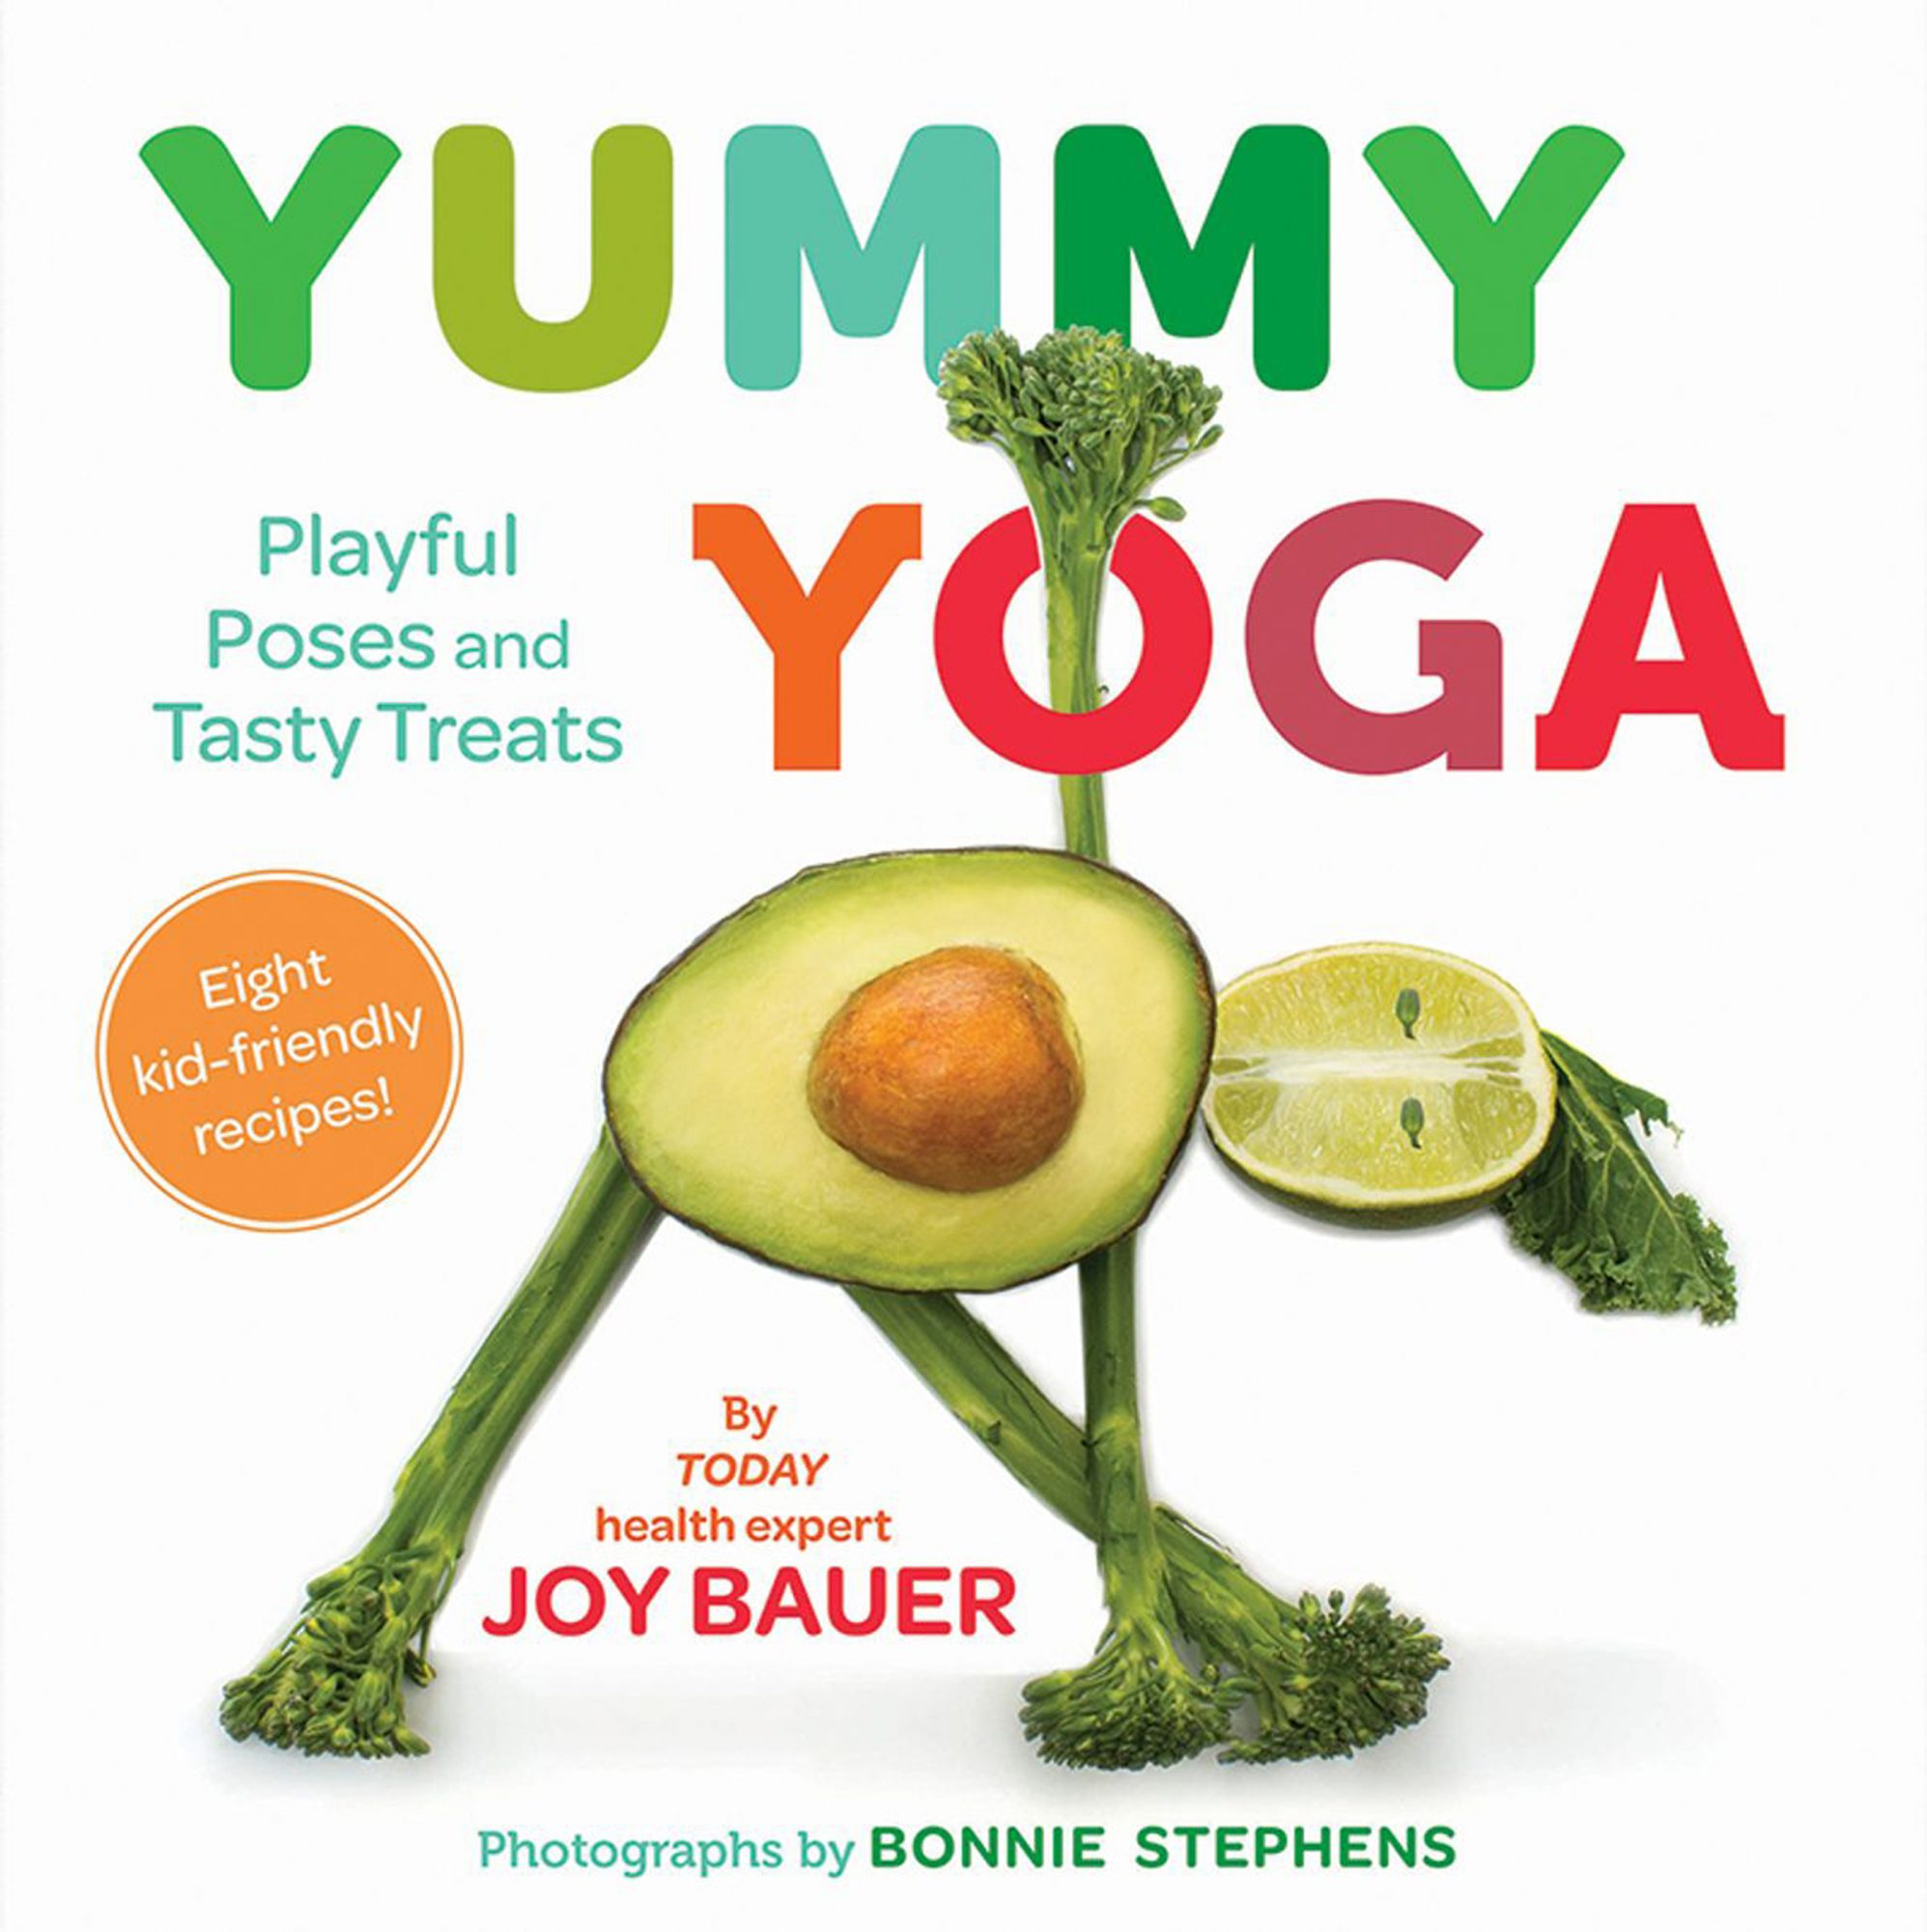 Joy Bauer S New Children S Book Makes Healthy Food And Yoga Fun People Com